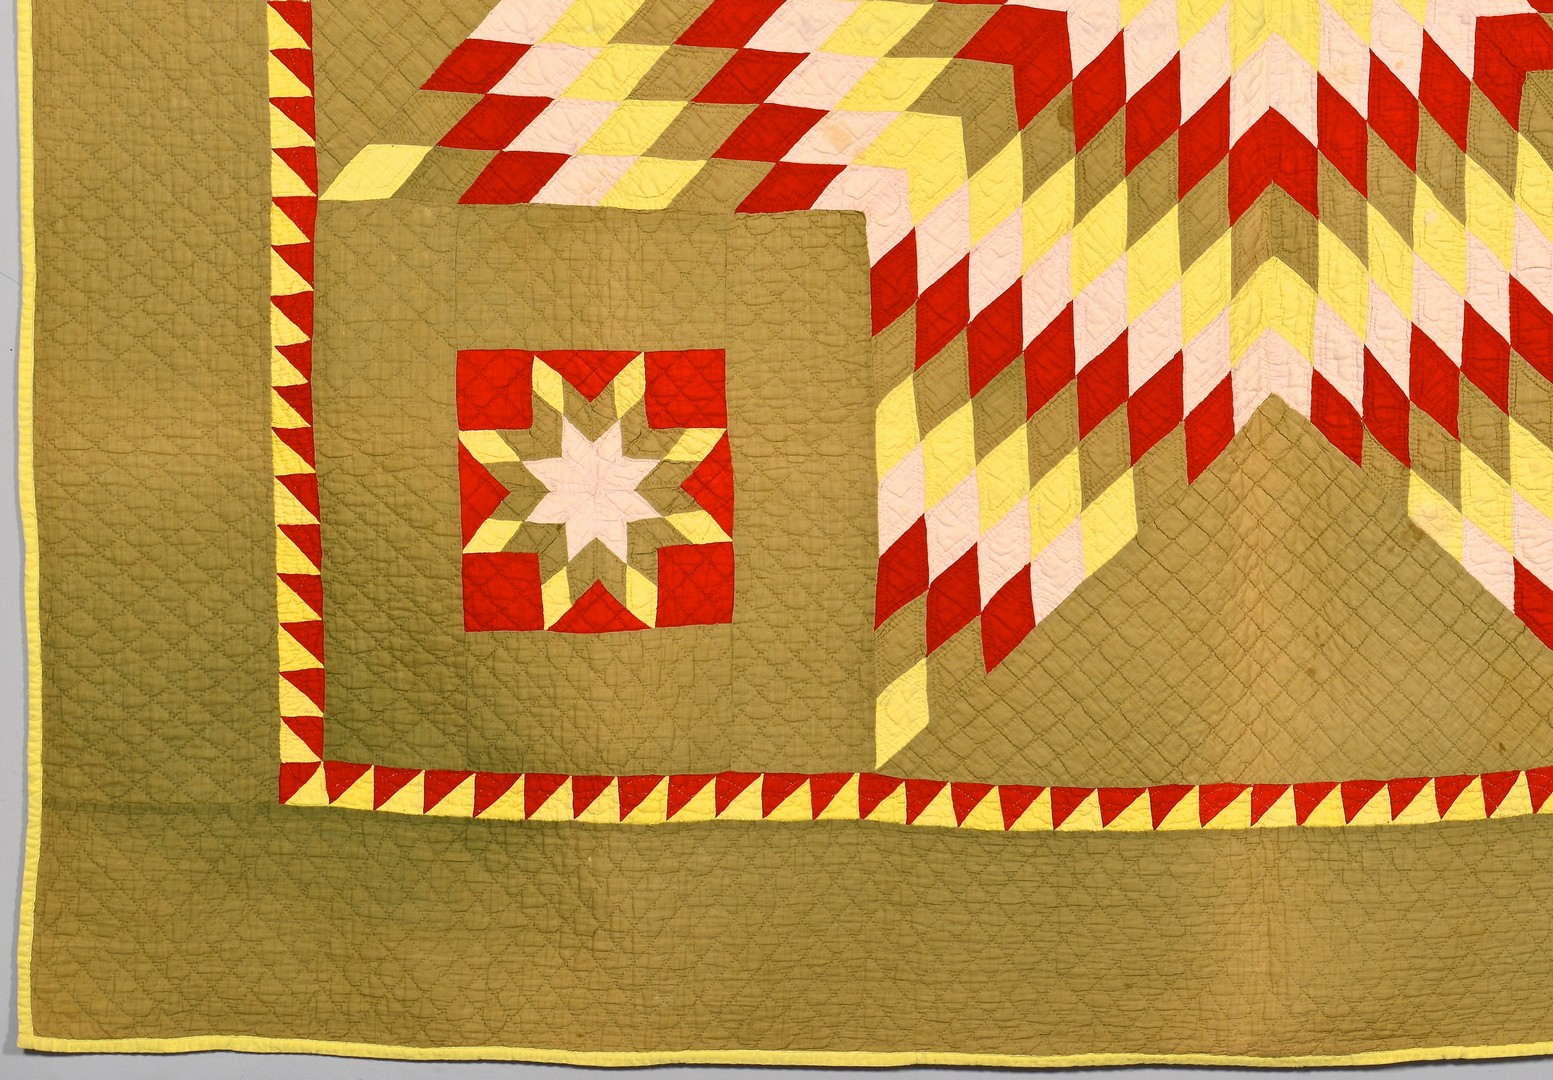 Lot 268: Adams or Berks County Quilt, Star of Bethlehem Pat